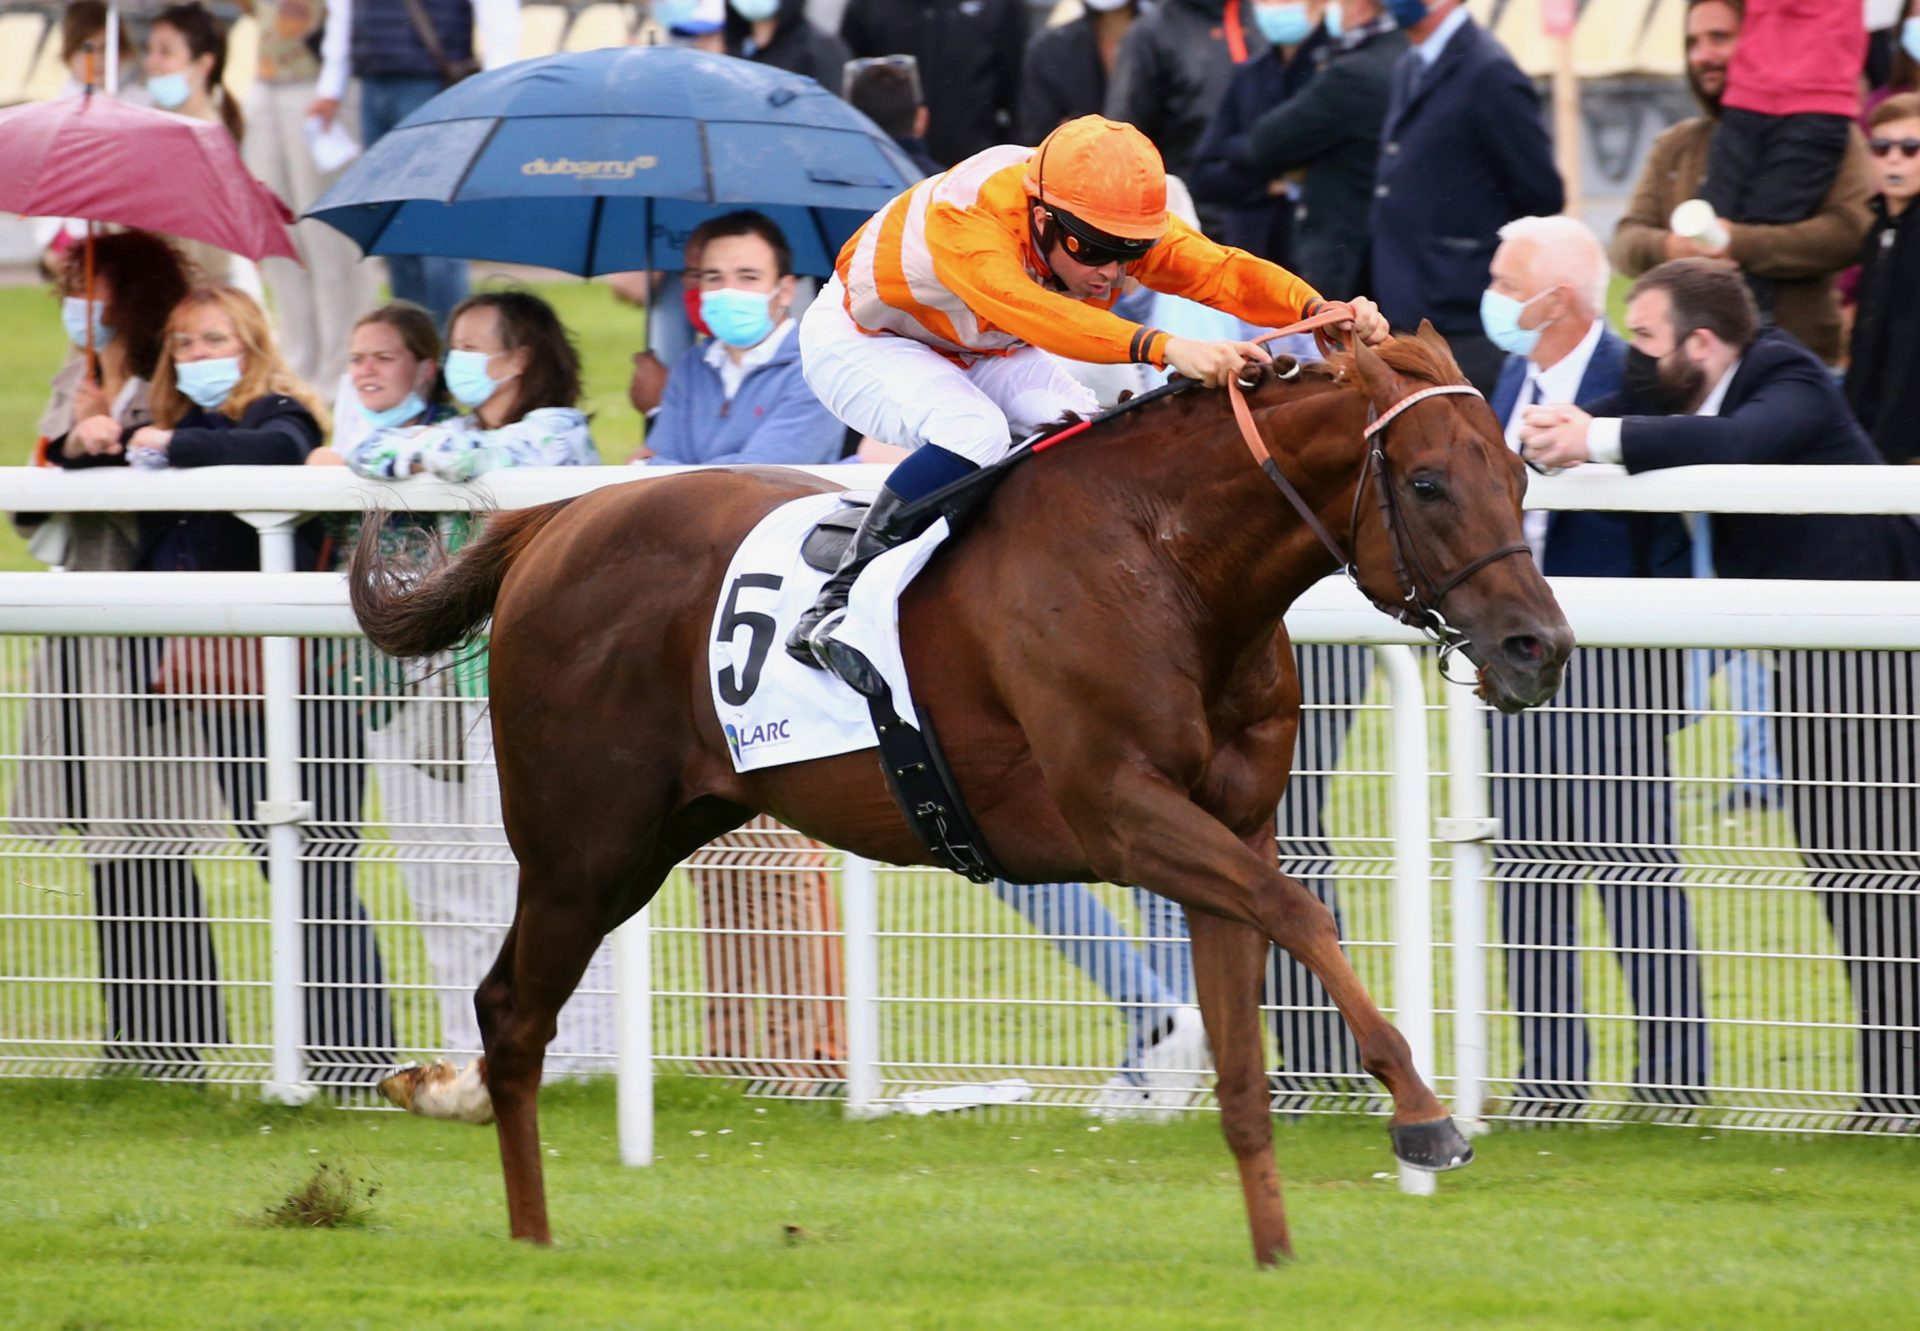 Marianafoot (Footstepsithesand) Wins The Group 1 Prix Maurice De Gheest at Deauville